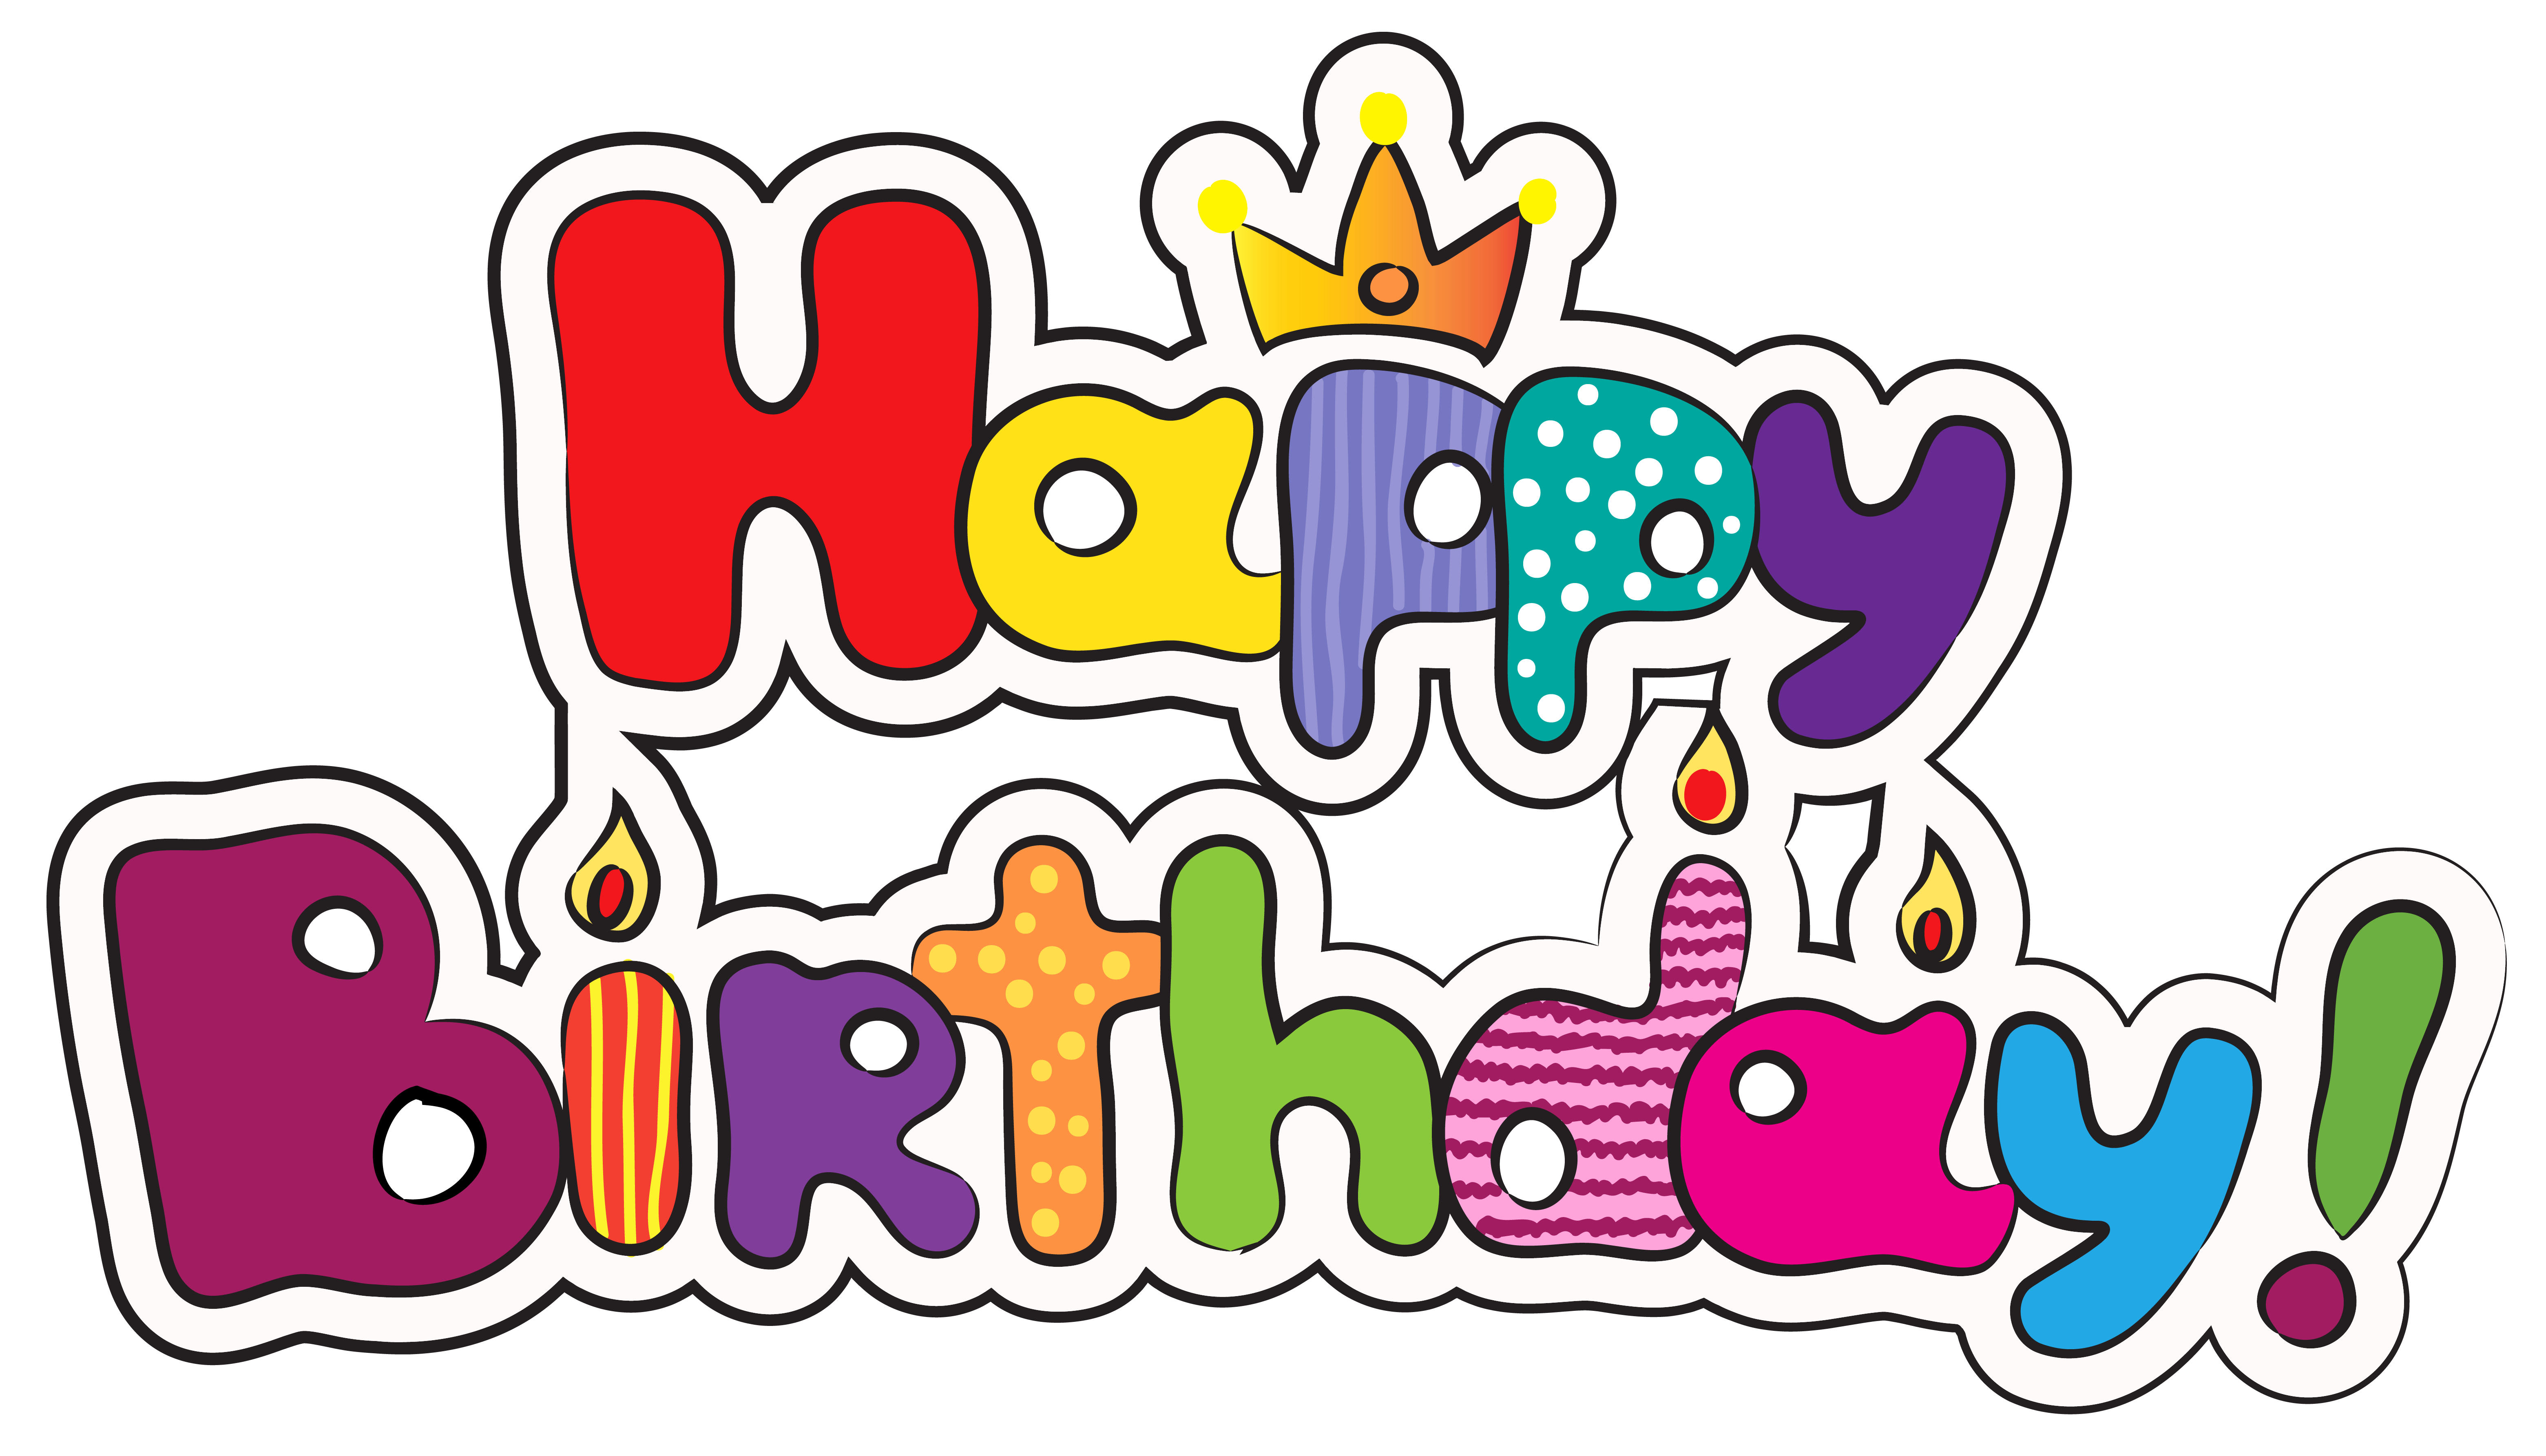 Facebook clipart birthday png free stock Birthday cake Clip art - Colorful Happy Birthday PNG Clipart Image ... png free stock